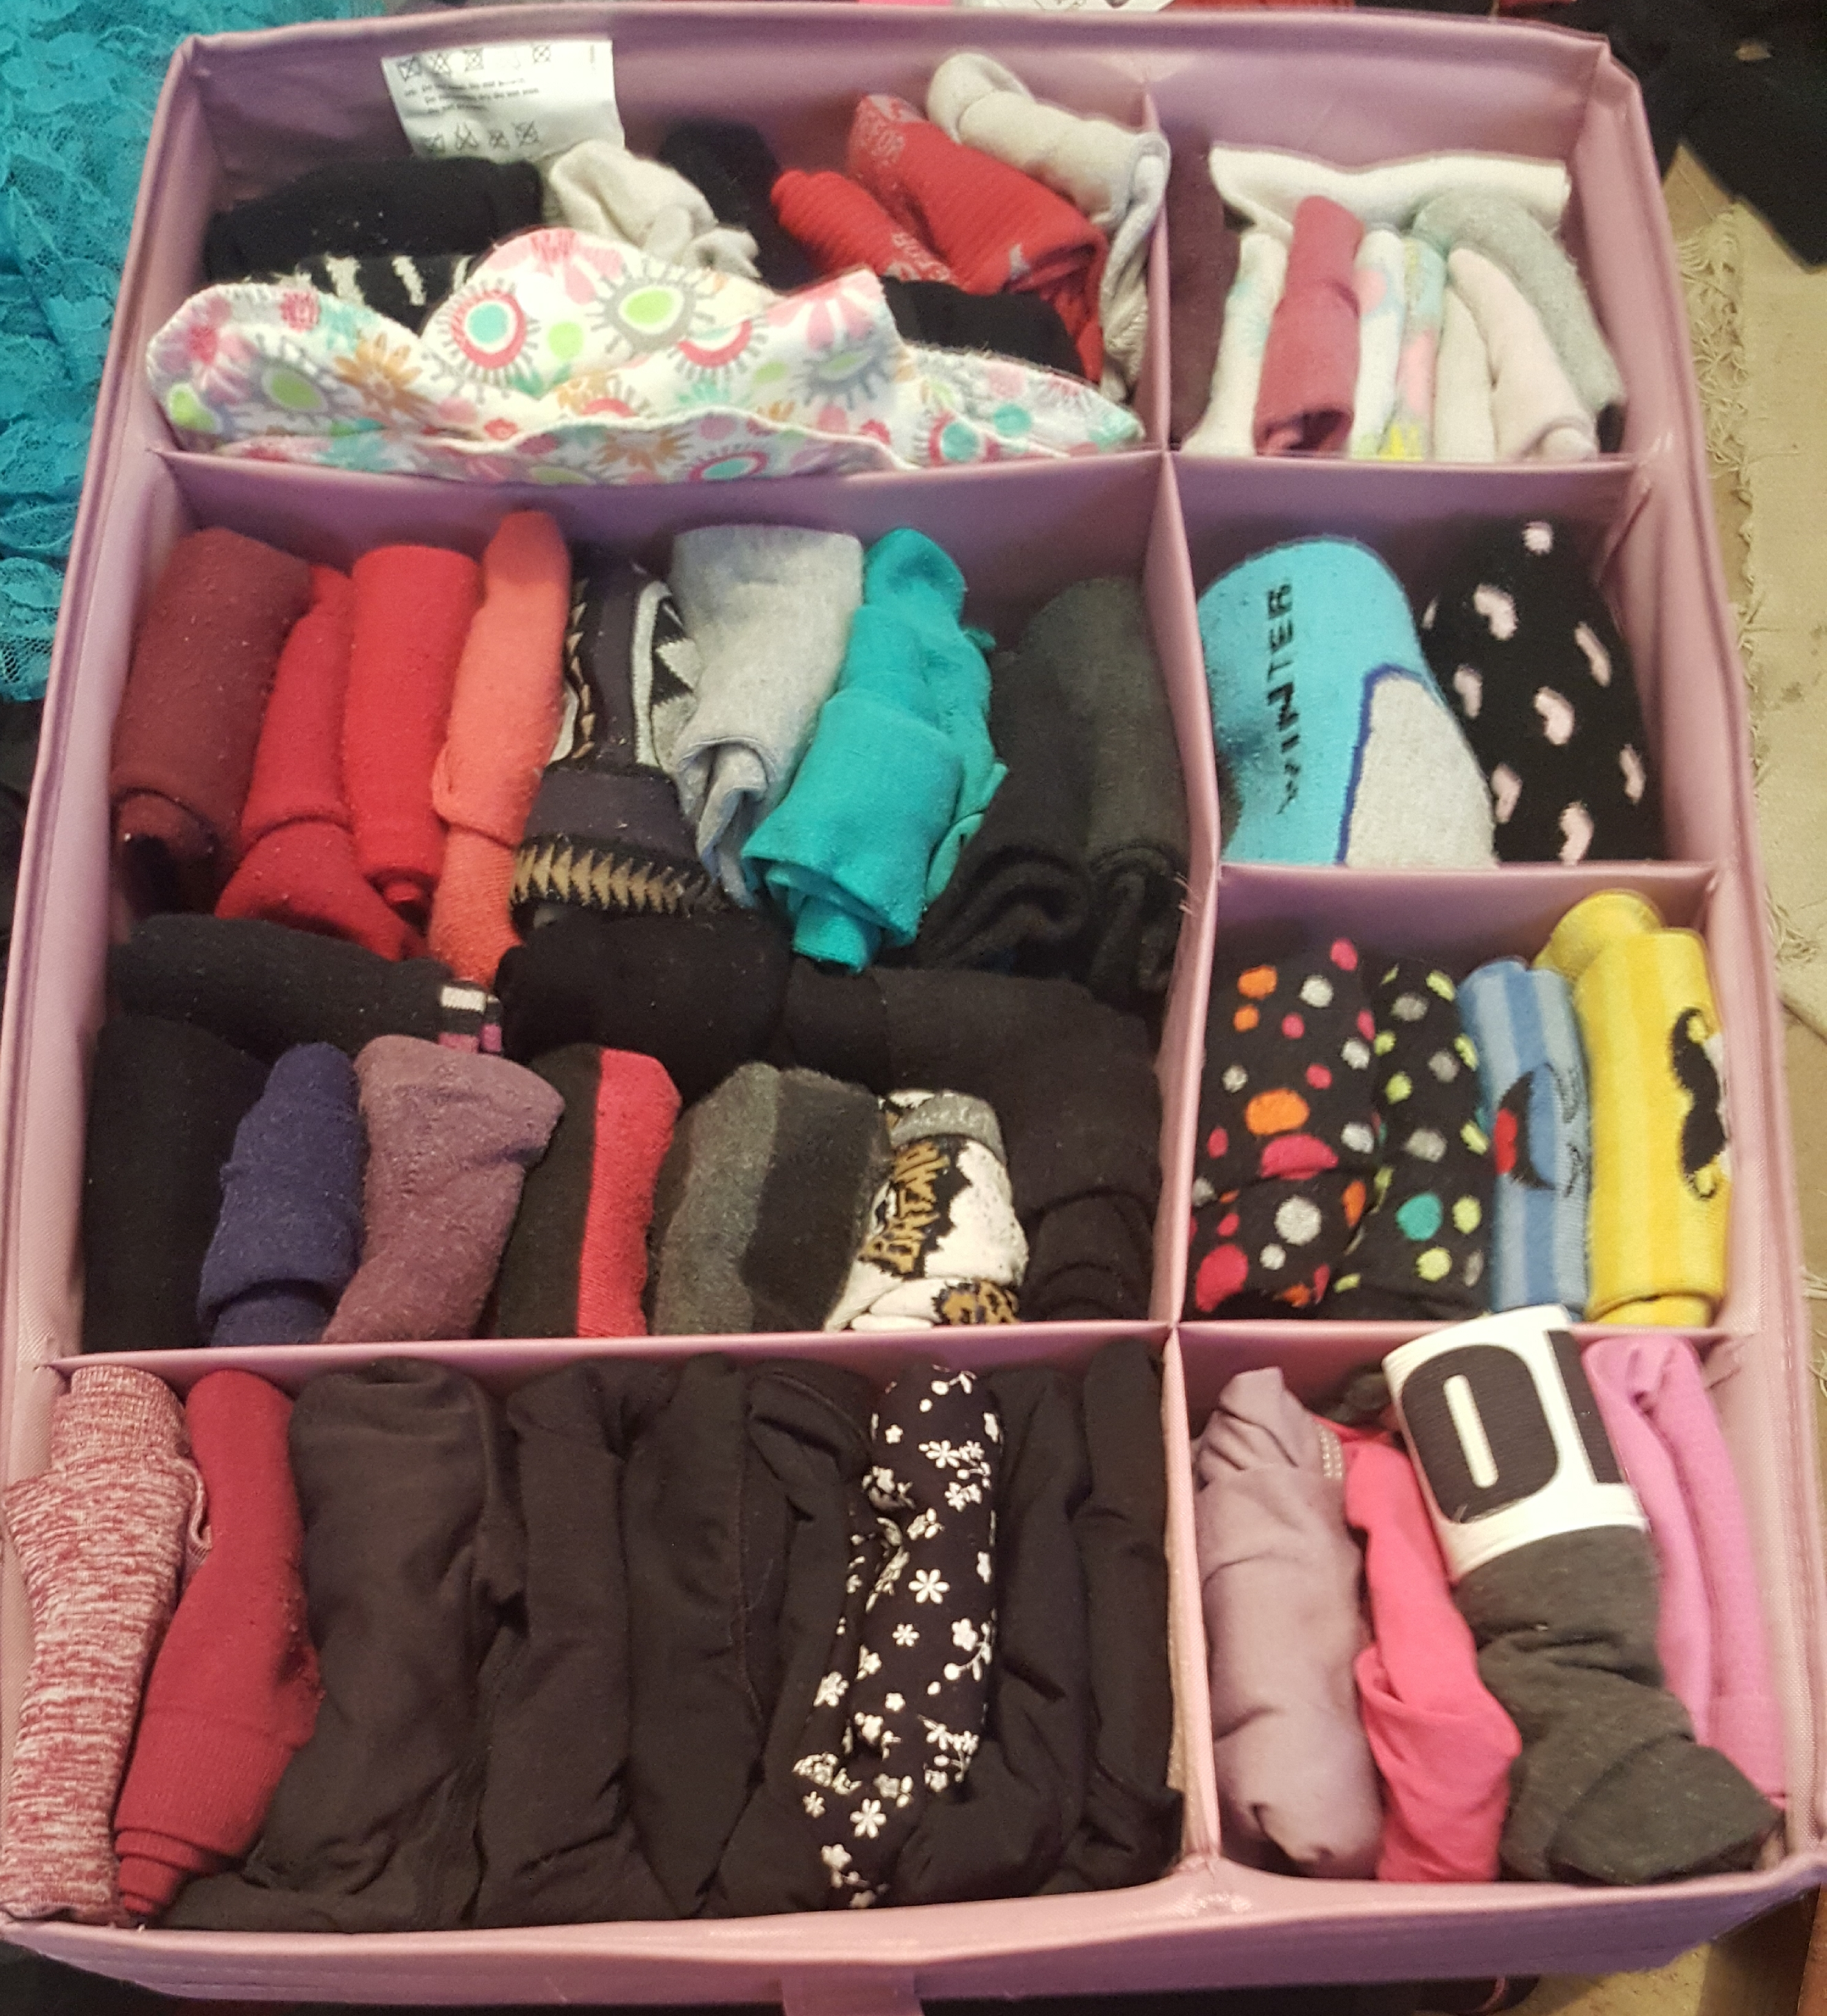 A square Ikea container with dividers, stuffed with socks and underwear, all stored vertically.